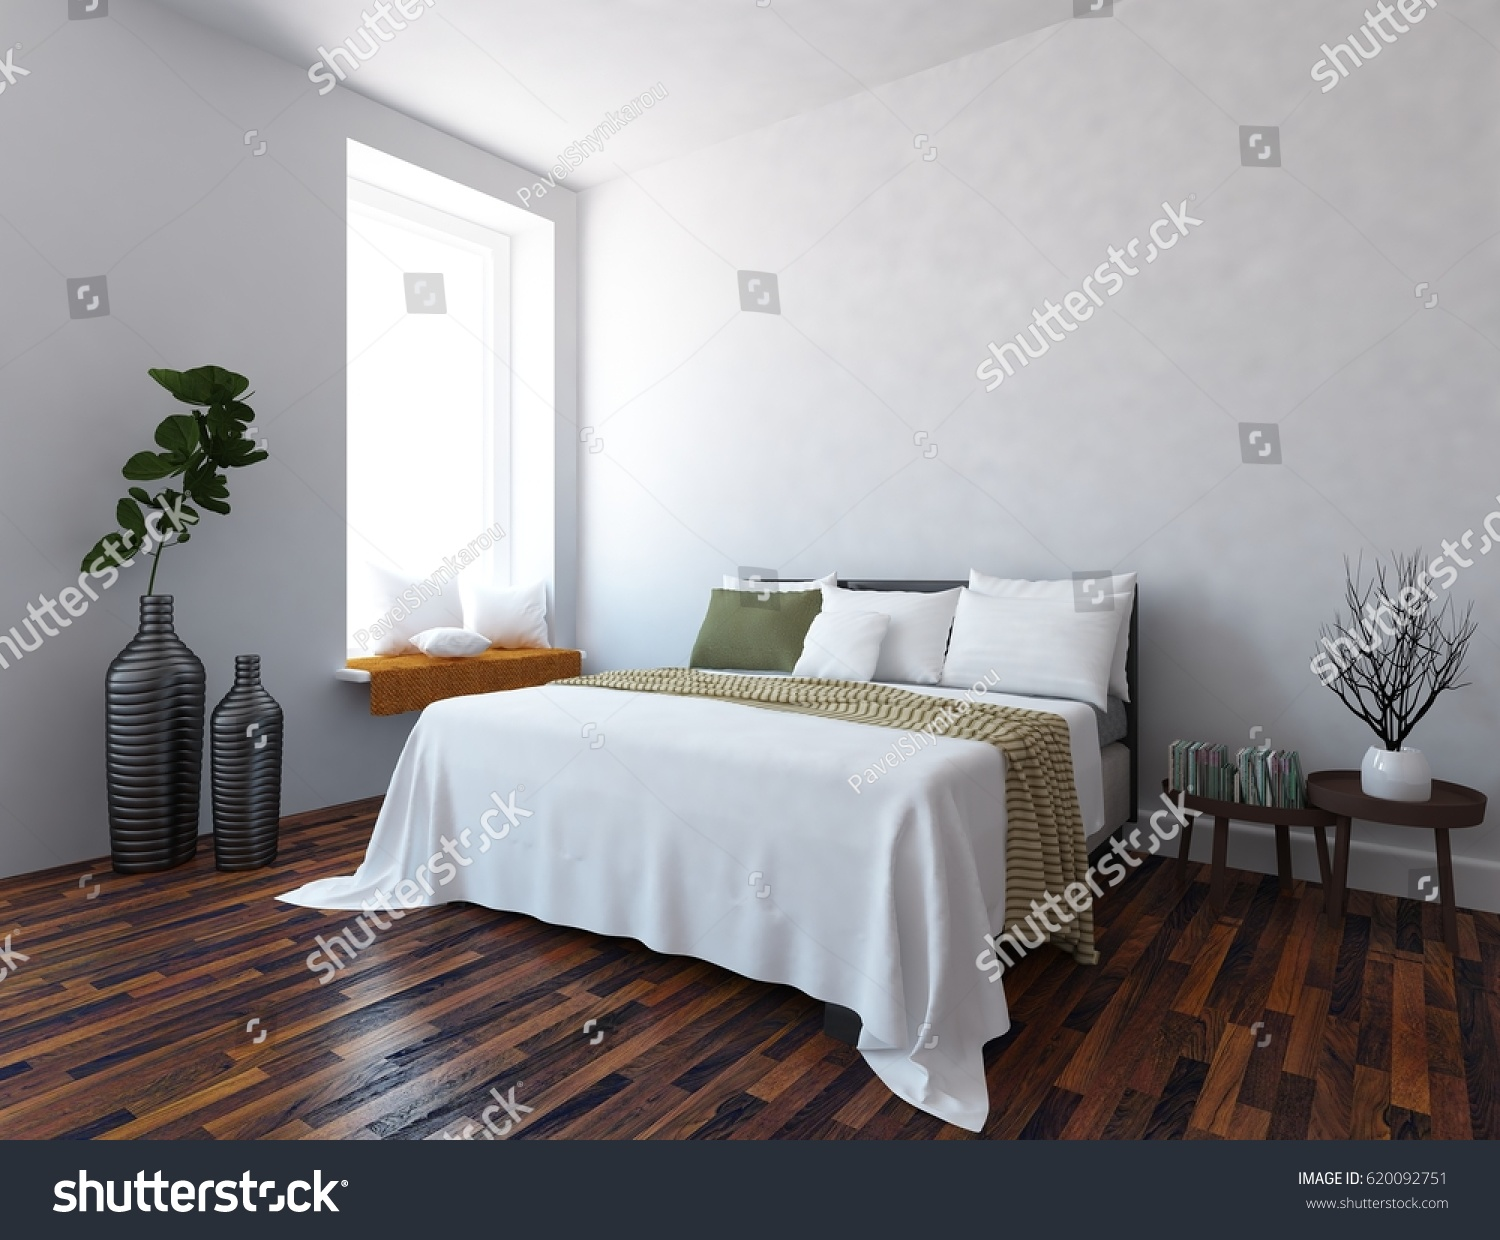 White Interior Design Of A Bedroom With Furniture. Scandinavian Interior  Design. 3d Illustration